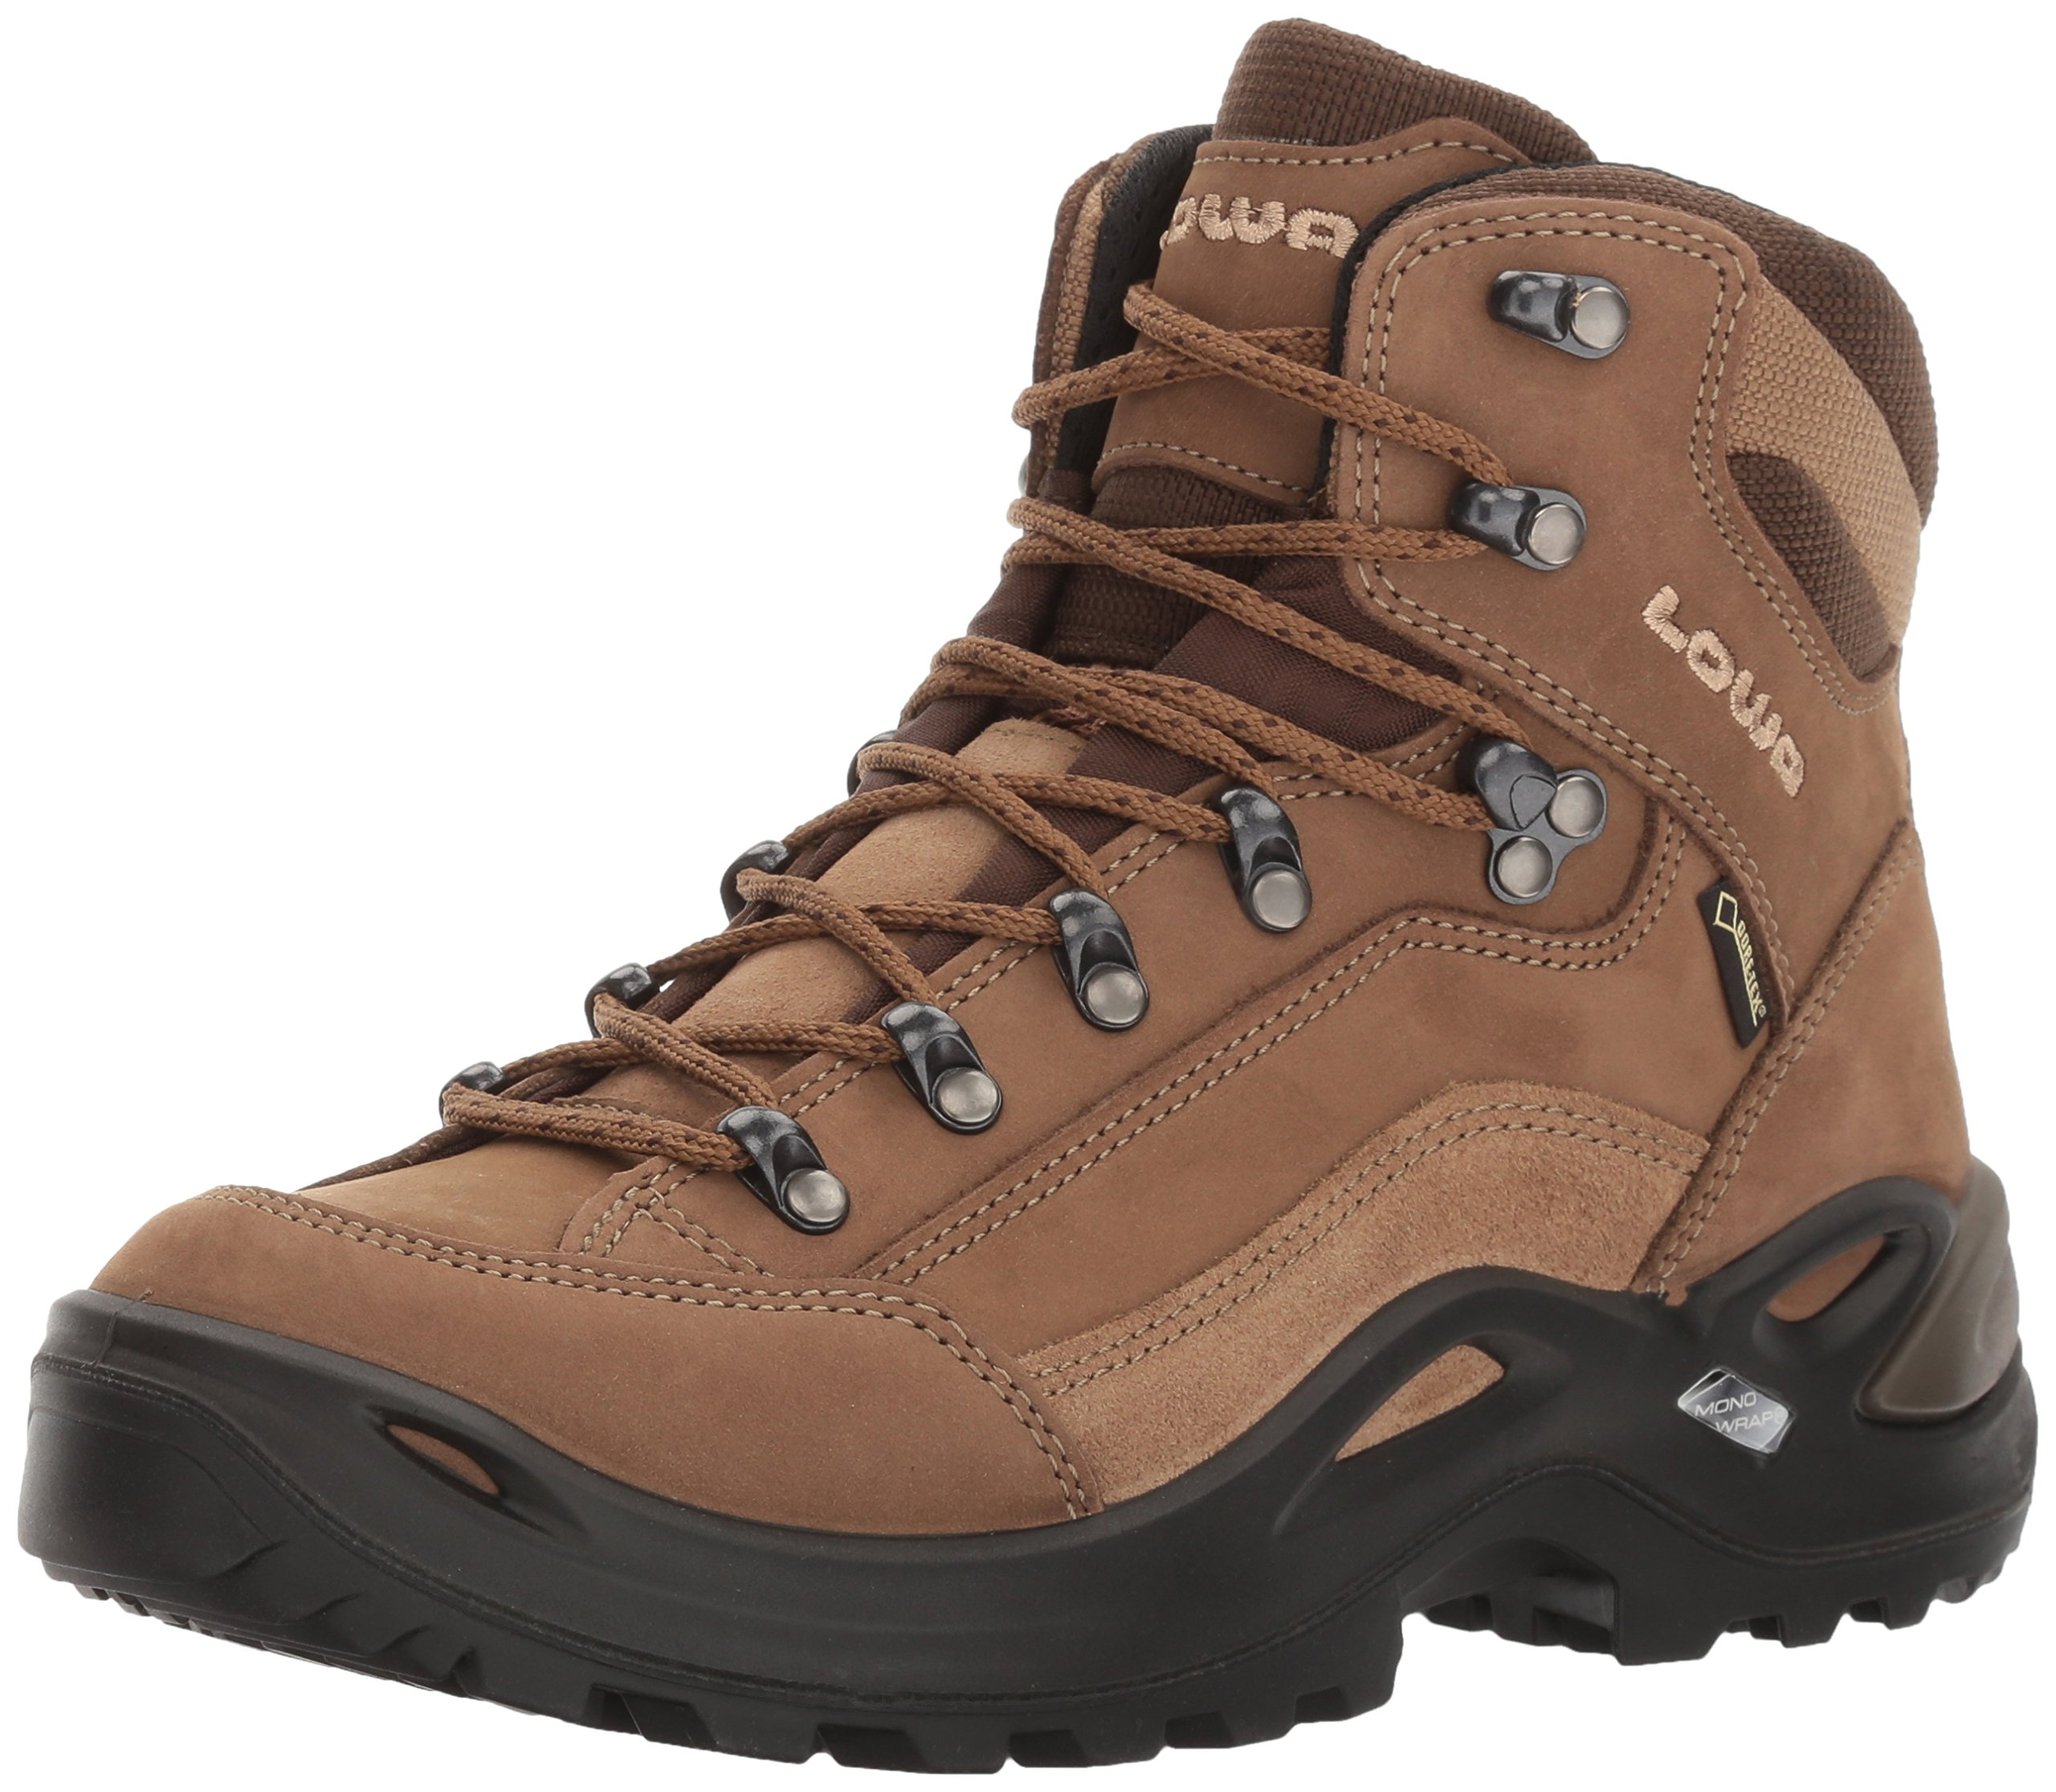 georgia toe most waterproof tex logger hiking comp gore images core comforter boots comfort extralarge comfortable